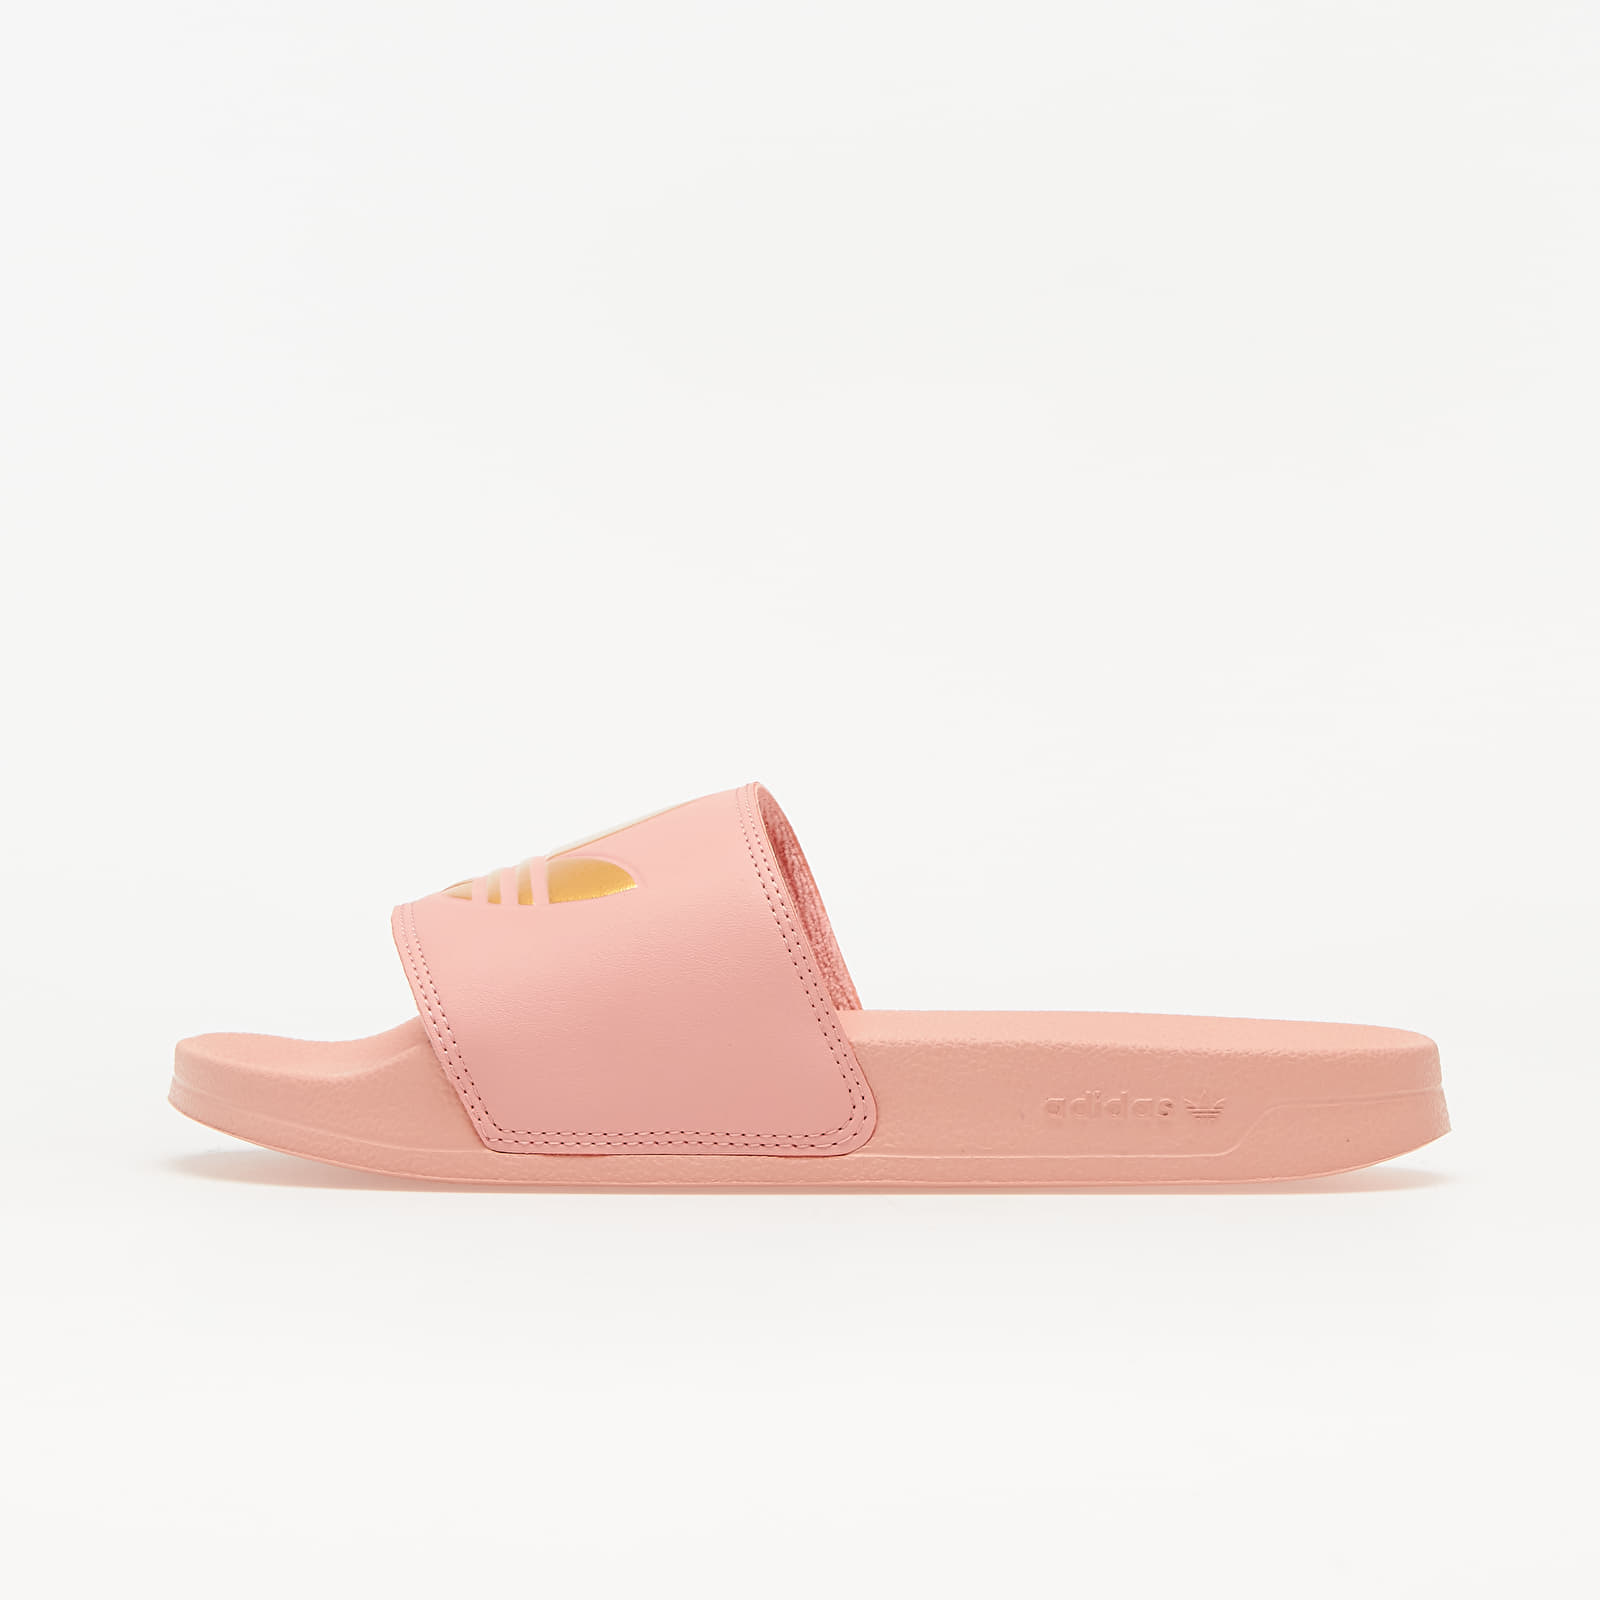 adidas Adilette Lite W Trace Pink/ Gold Metalic/ Trace Pink EUR 39